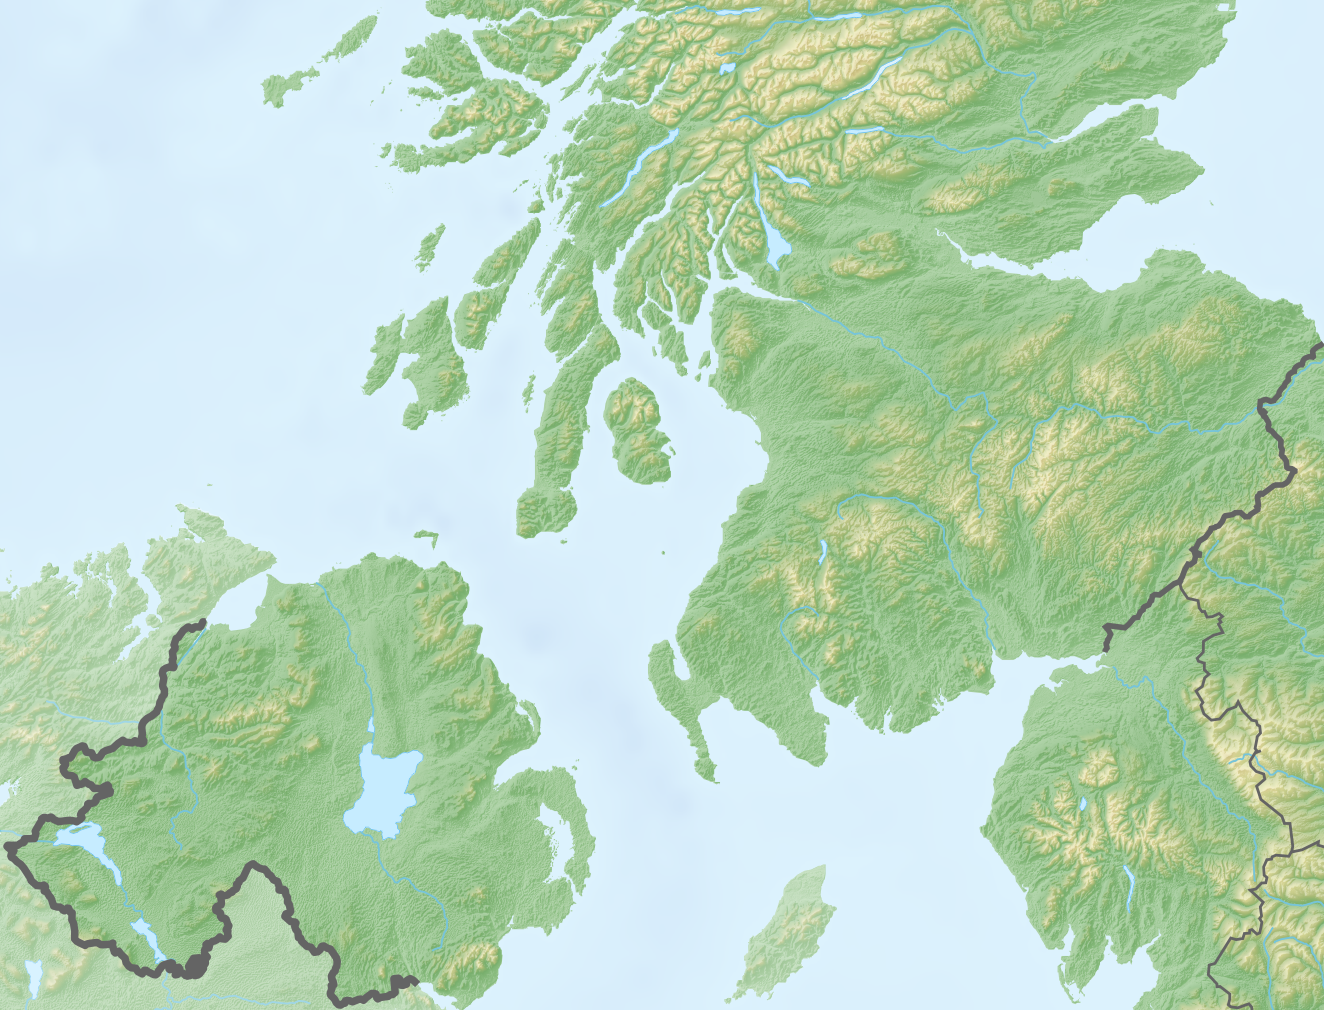 Southern_Scotland_and_Northern_Ireland_relief_map.png?profile=RESIZE_710x